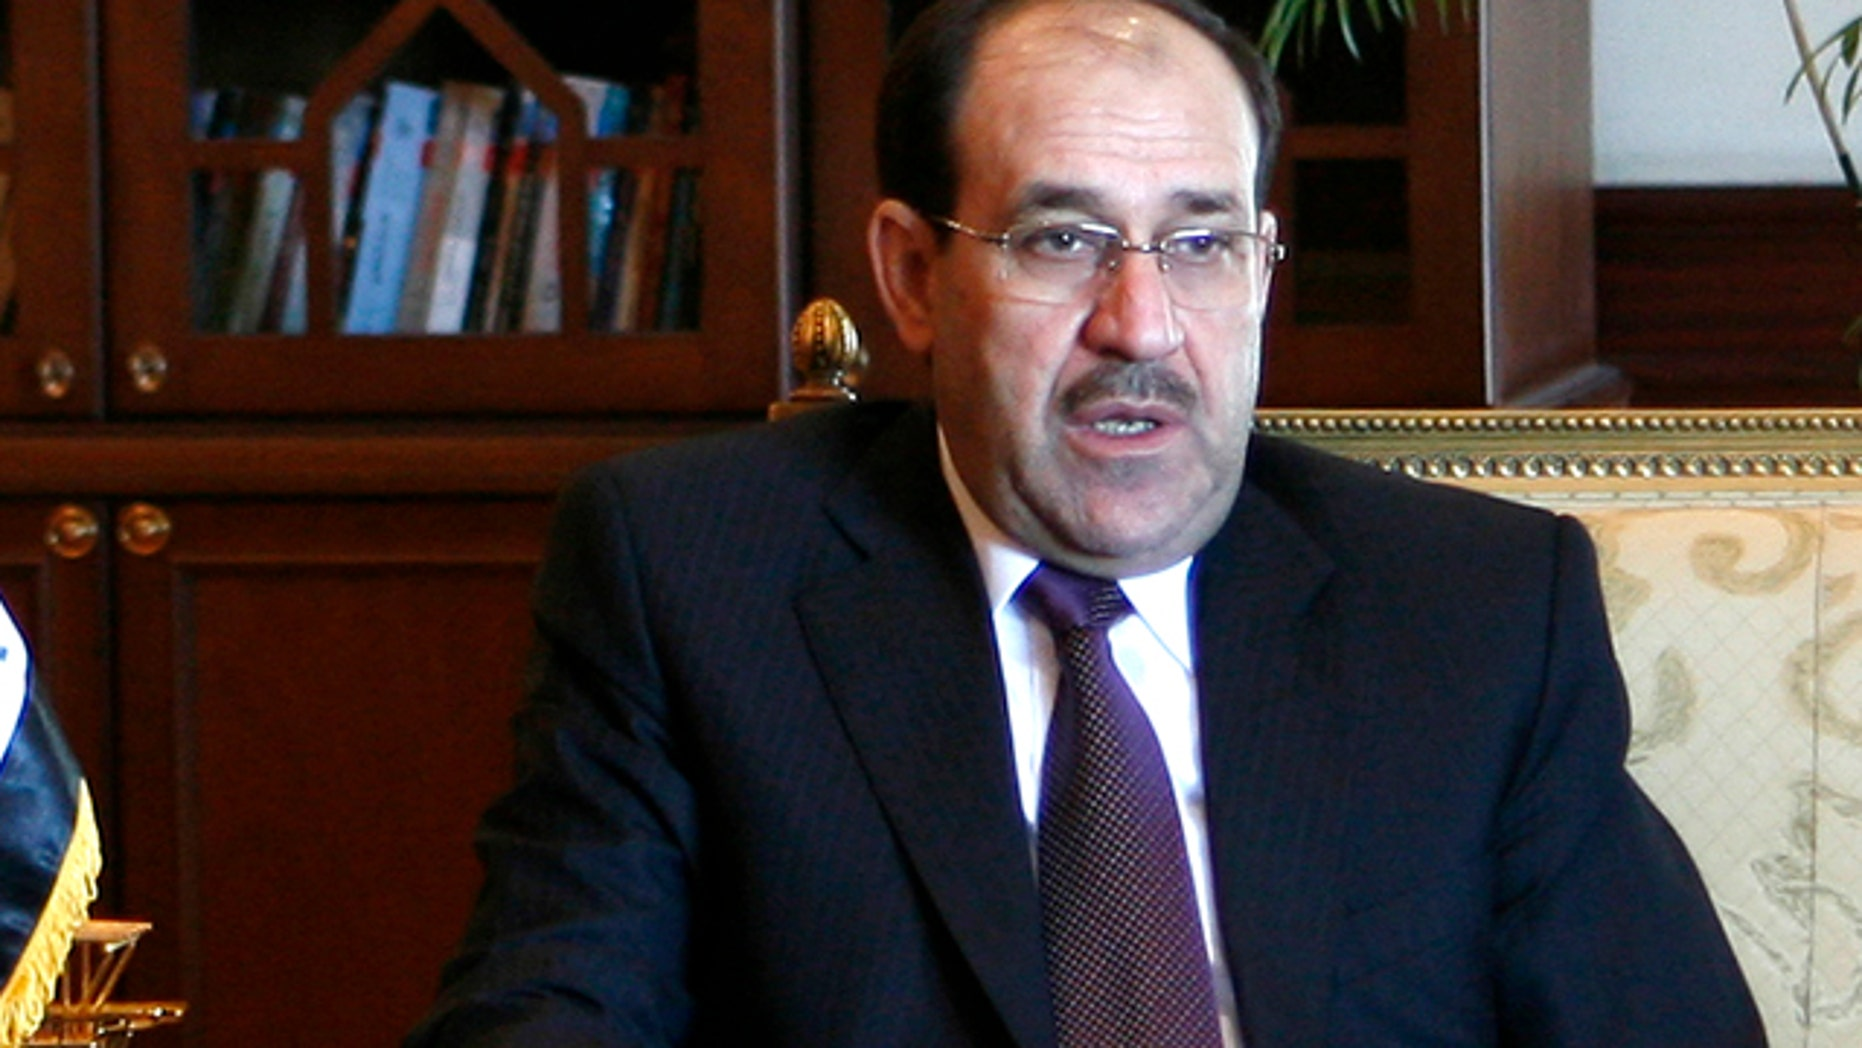 FILE 2009: Iraq's Prime Minister Nouri Maliki gestures during talks with his Egyptian counterpart Ahmed Nazif in Cairo.